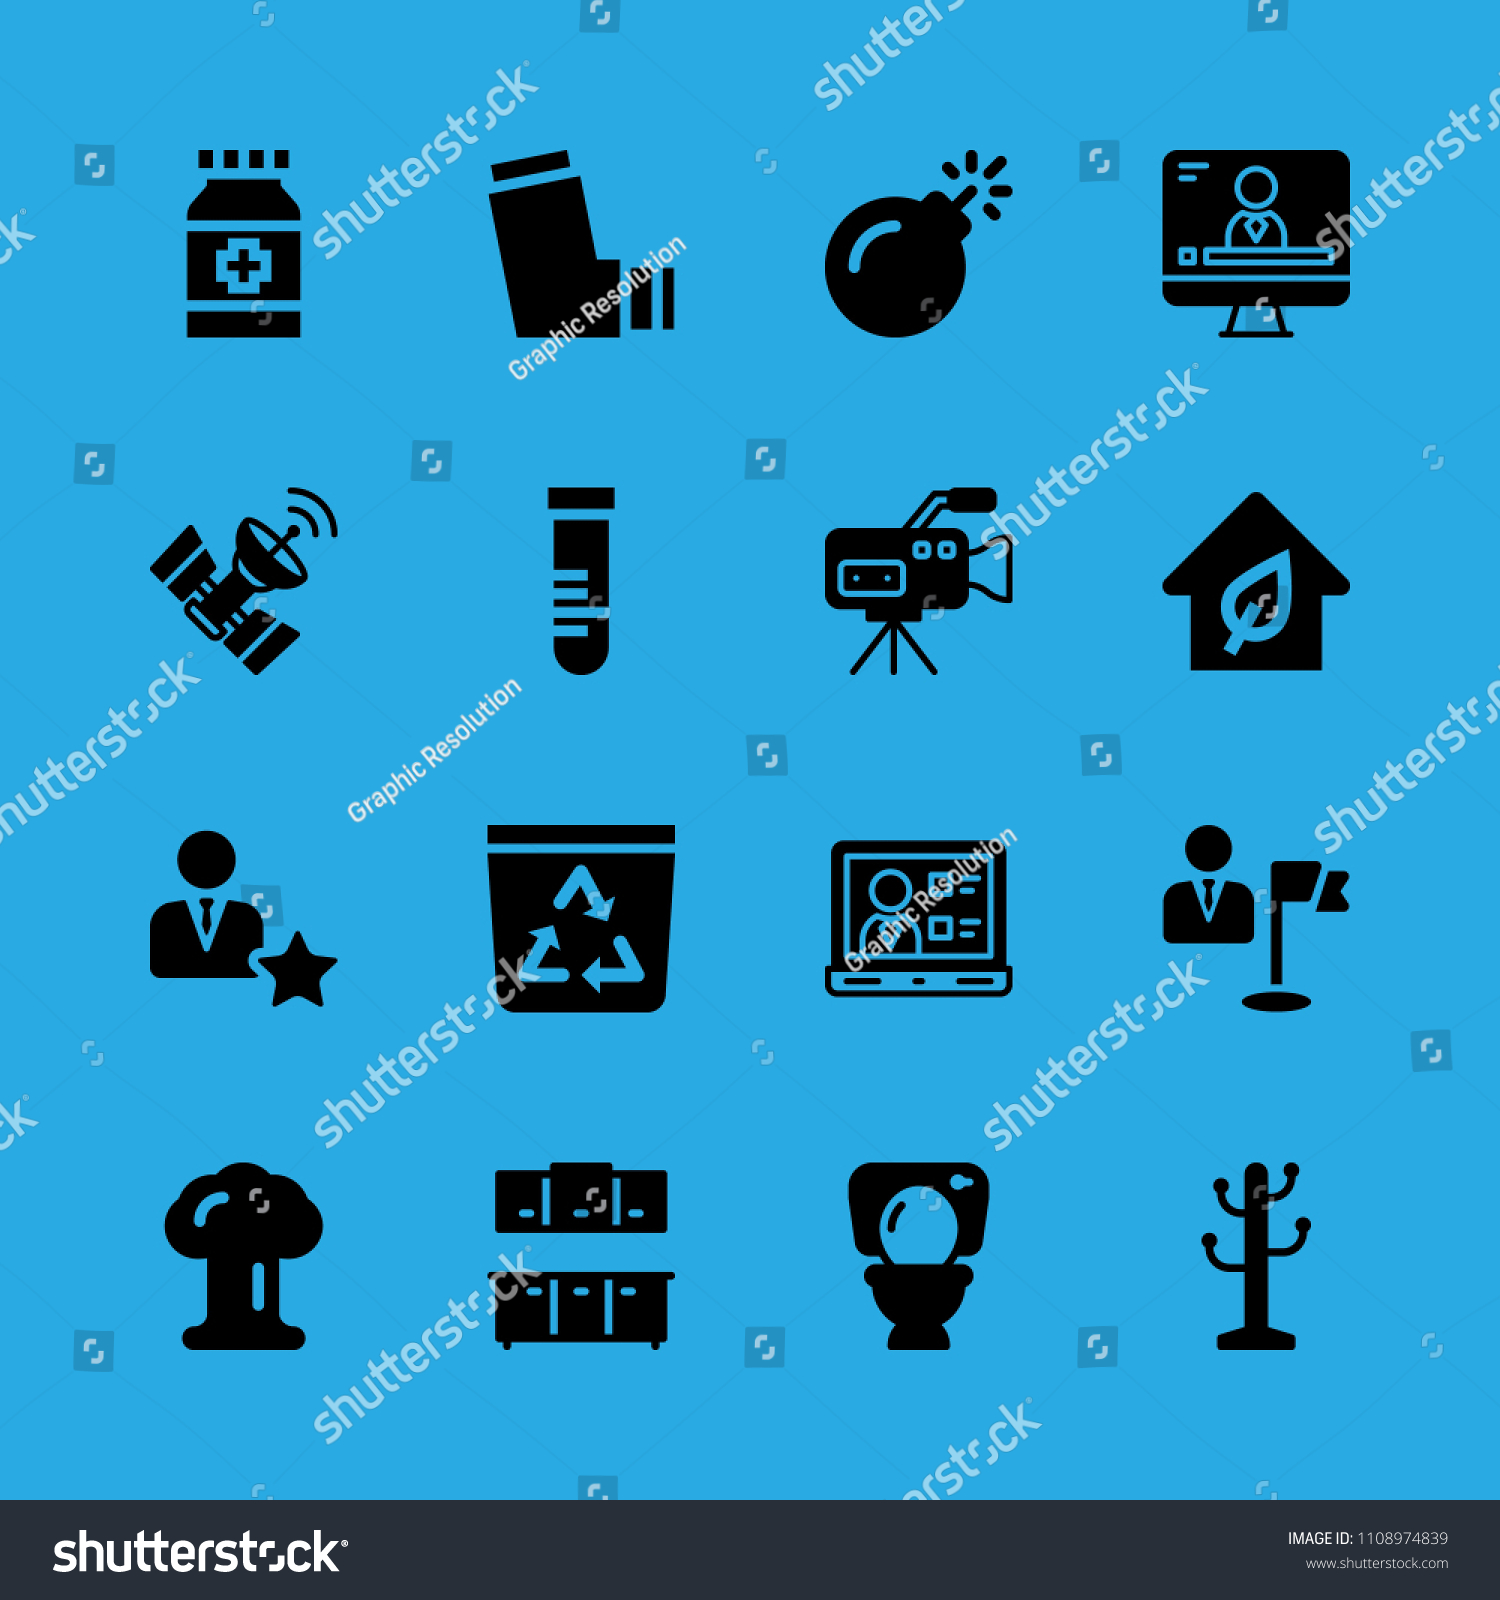 Recycle Bin Laptop Manager Cabinets Toilet Stock Vector Royalty Free 1108974839